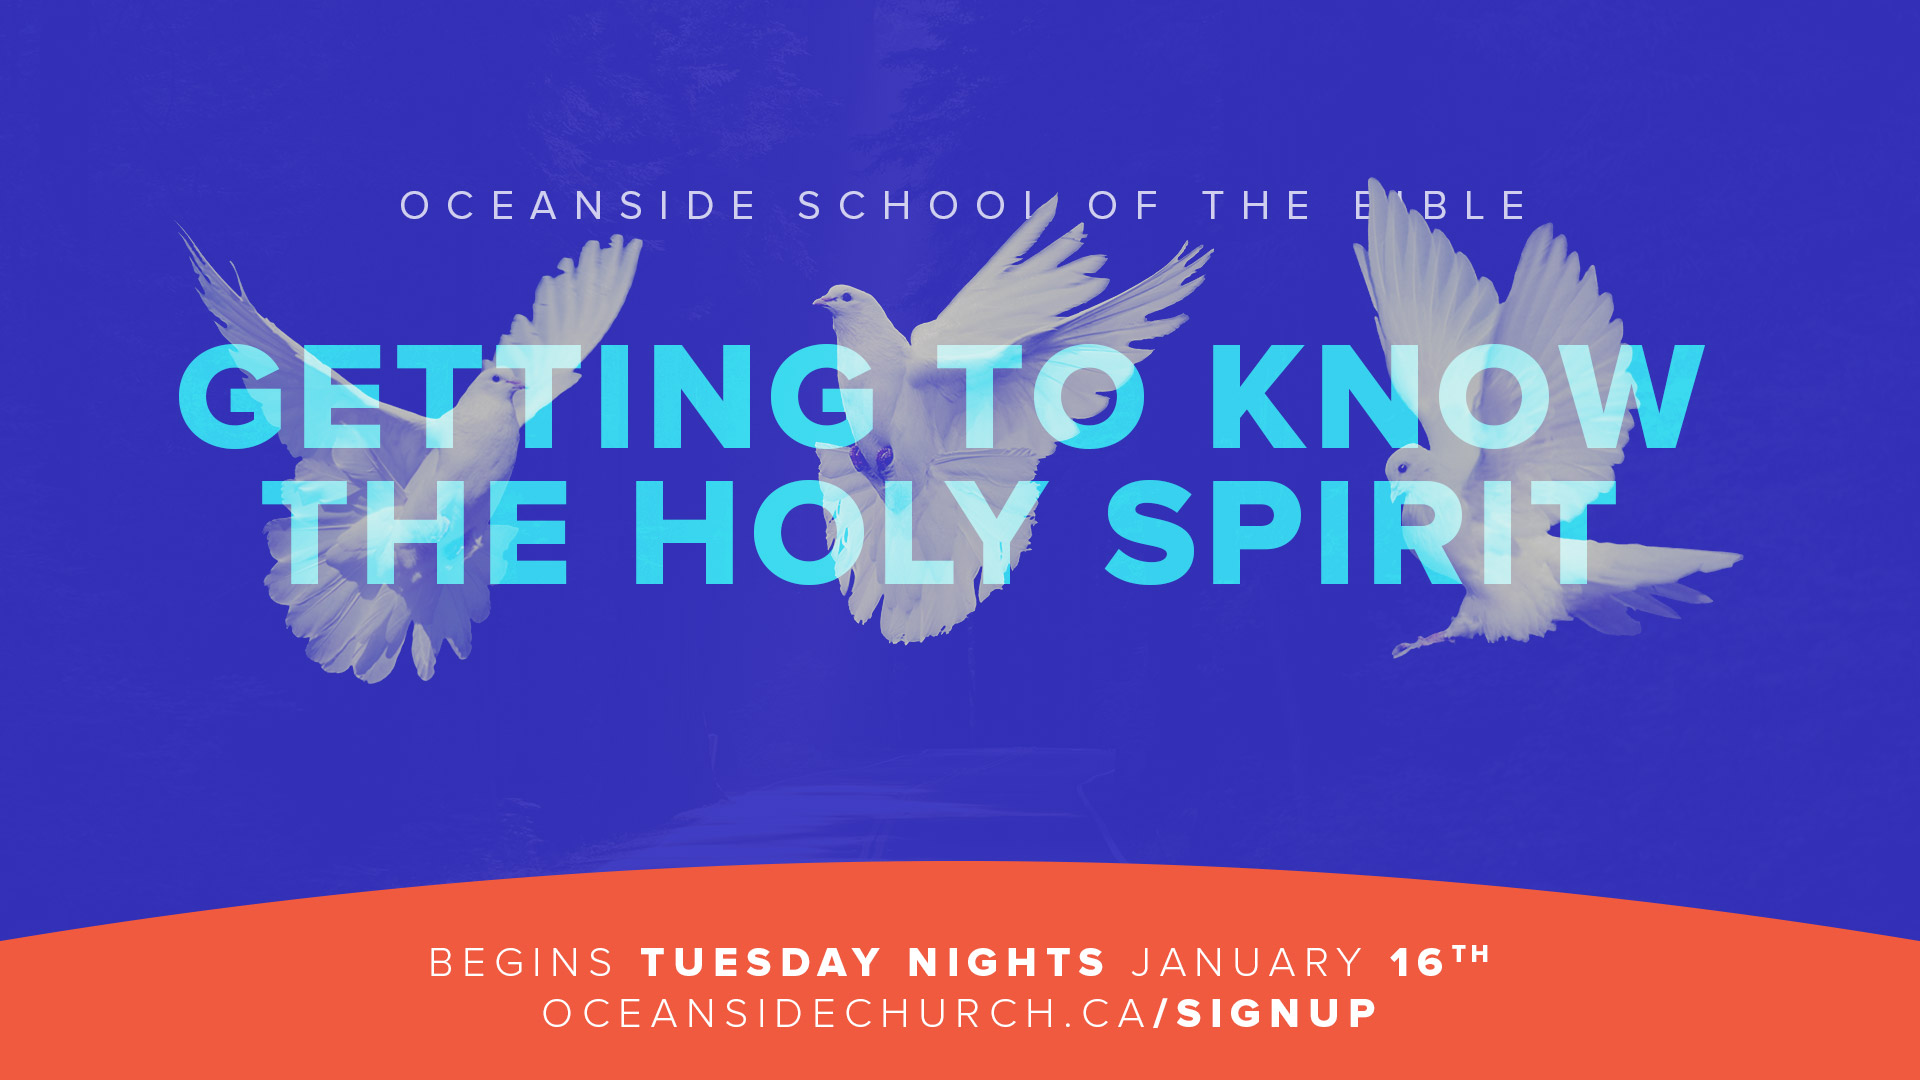 Getting to know the Holy Spirit 2018